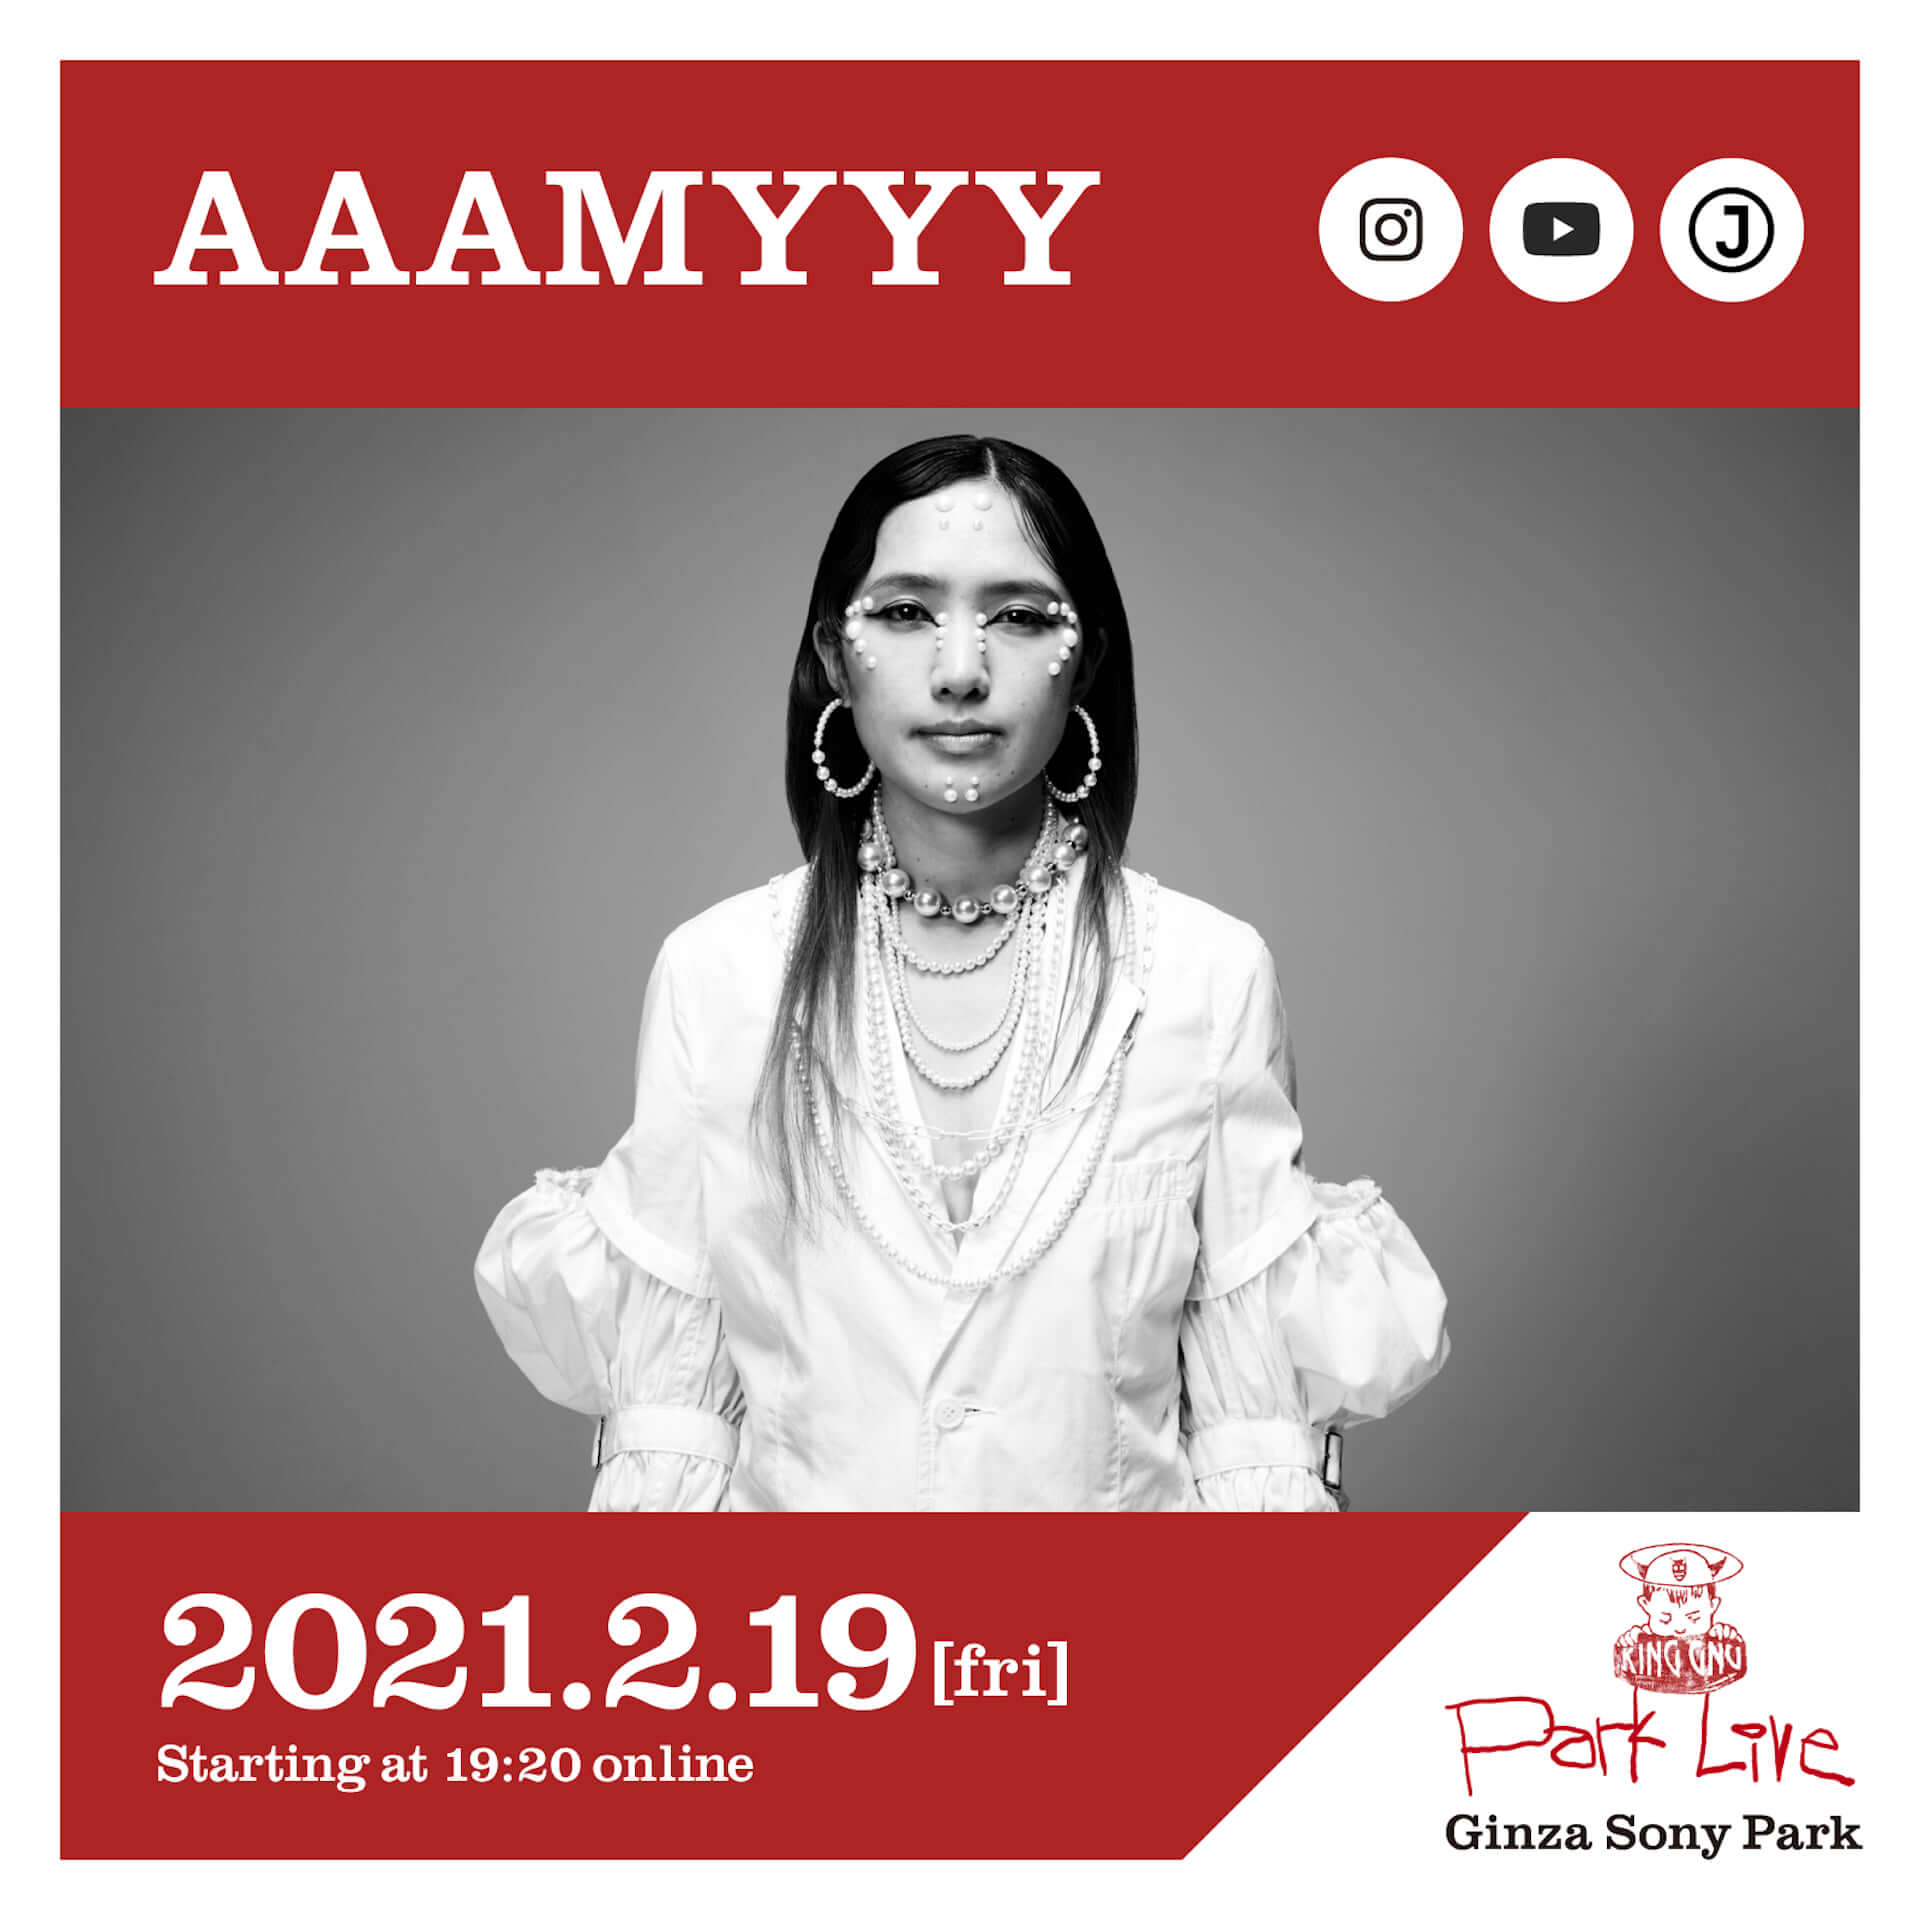 <Park Live>と<#014 ヌーミレパーク(仮)>の連動企画にAAAMYYYが出演決定!YouTube&Instagramより生配信 music210216_parklive-aaamyyy_1-1920x1920